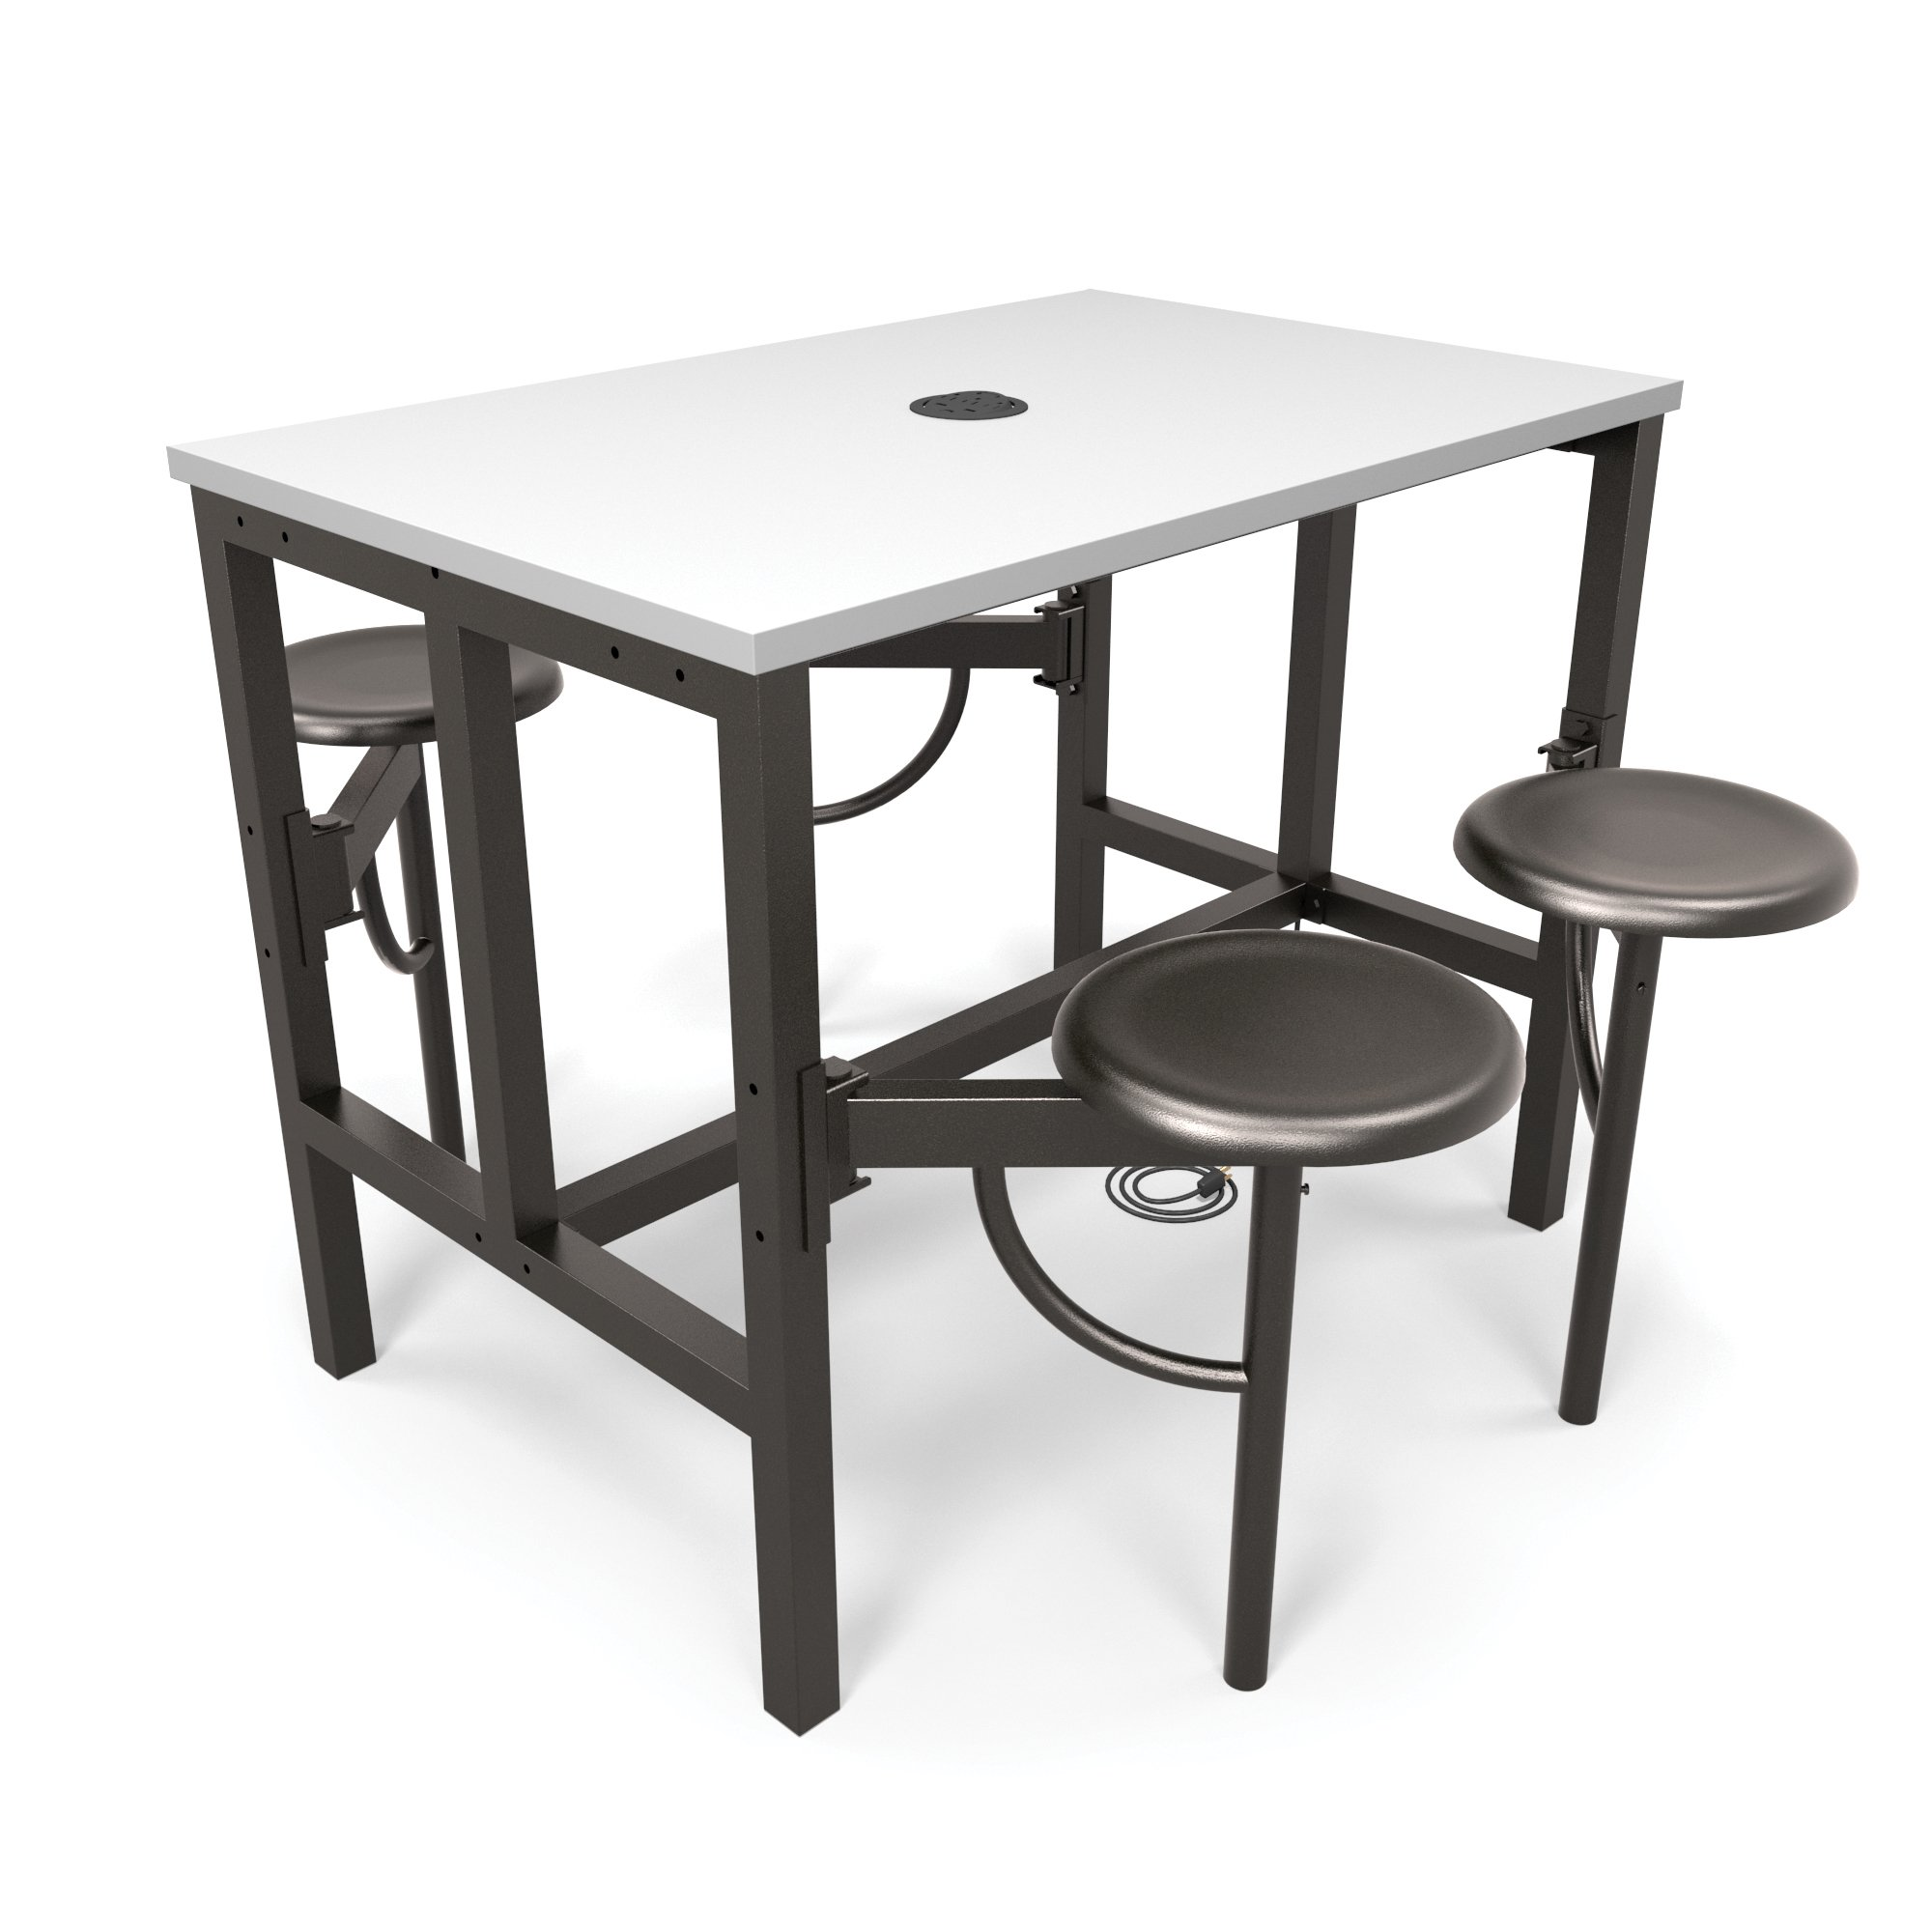 OFM Model 9004 Endure Series Standing Height 4 Seat Table, 38'' Height, 31.25'' Width, 47.625'' Length, Dark Vein/White by OFM